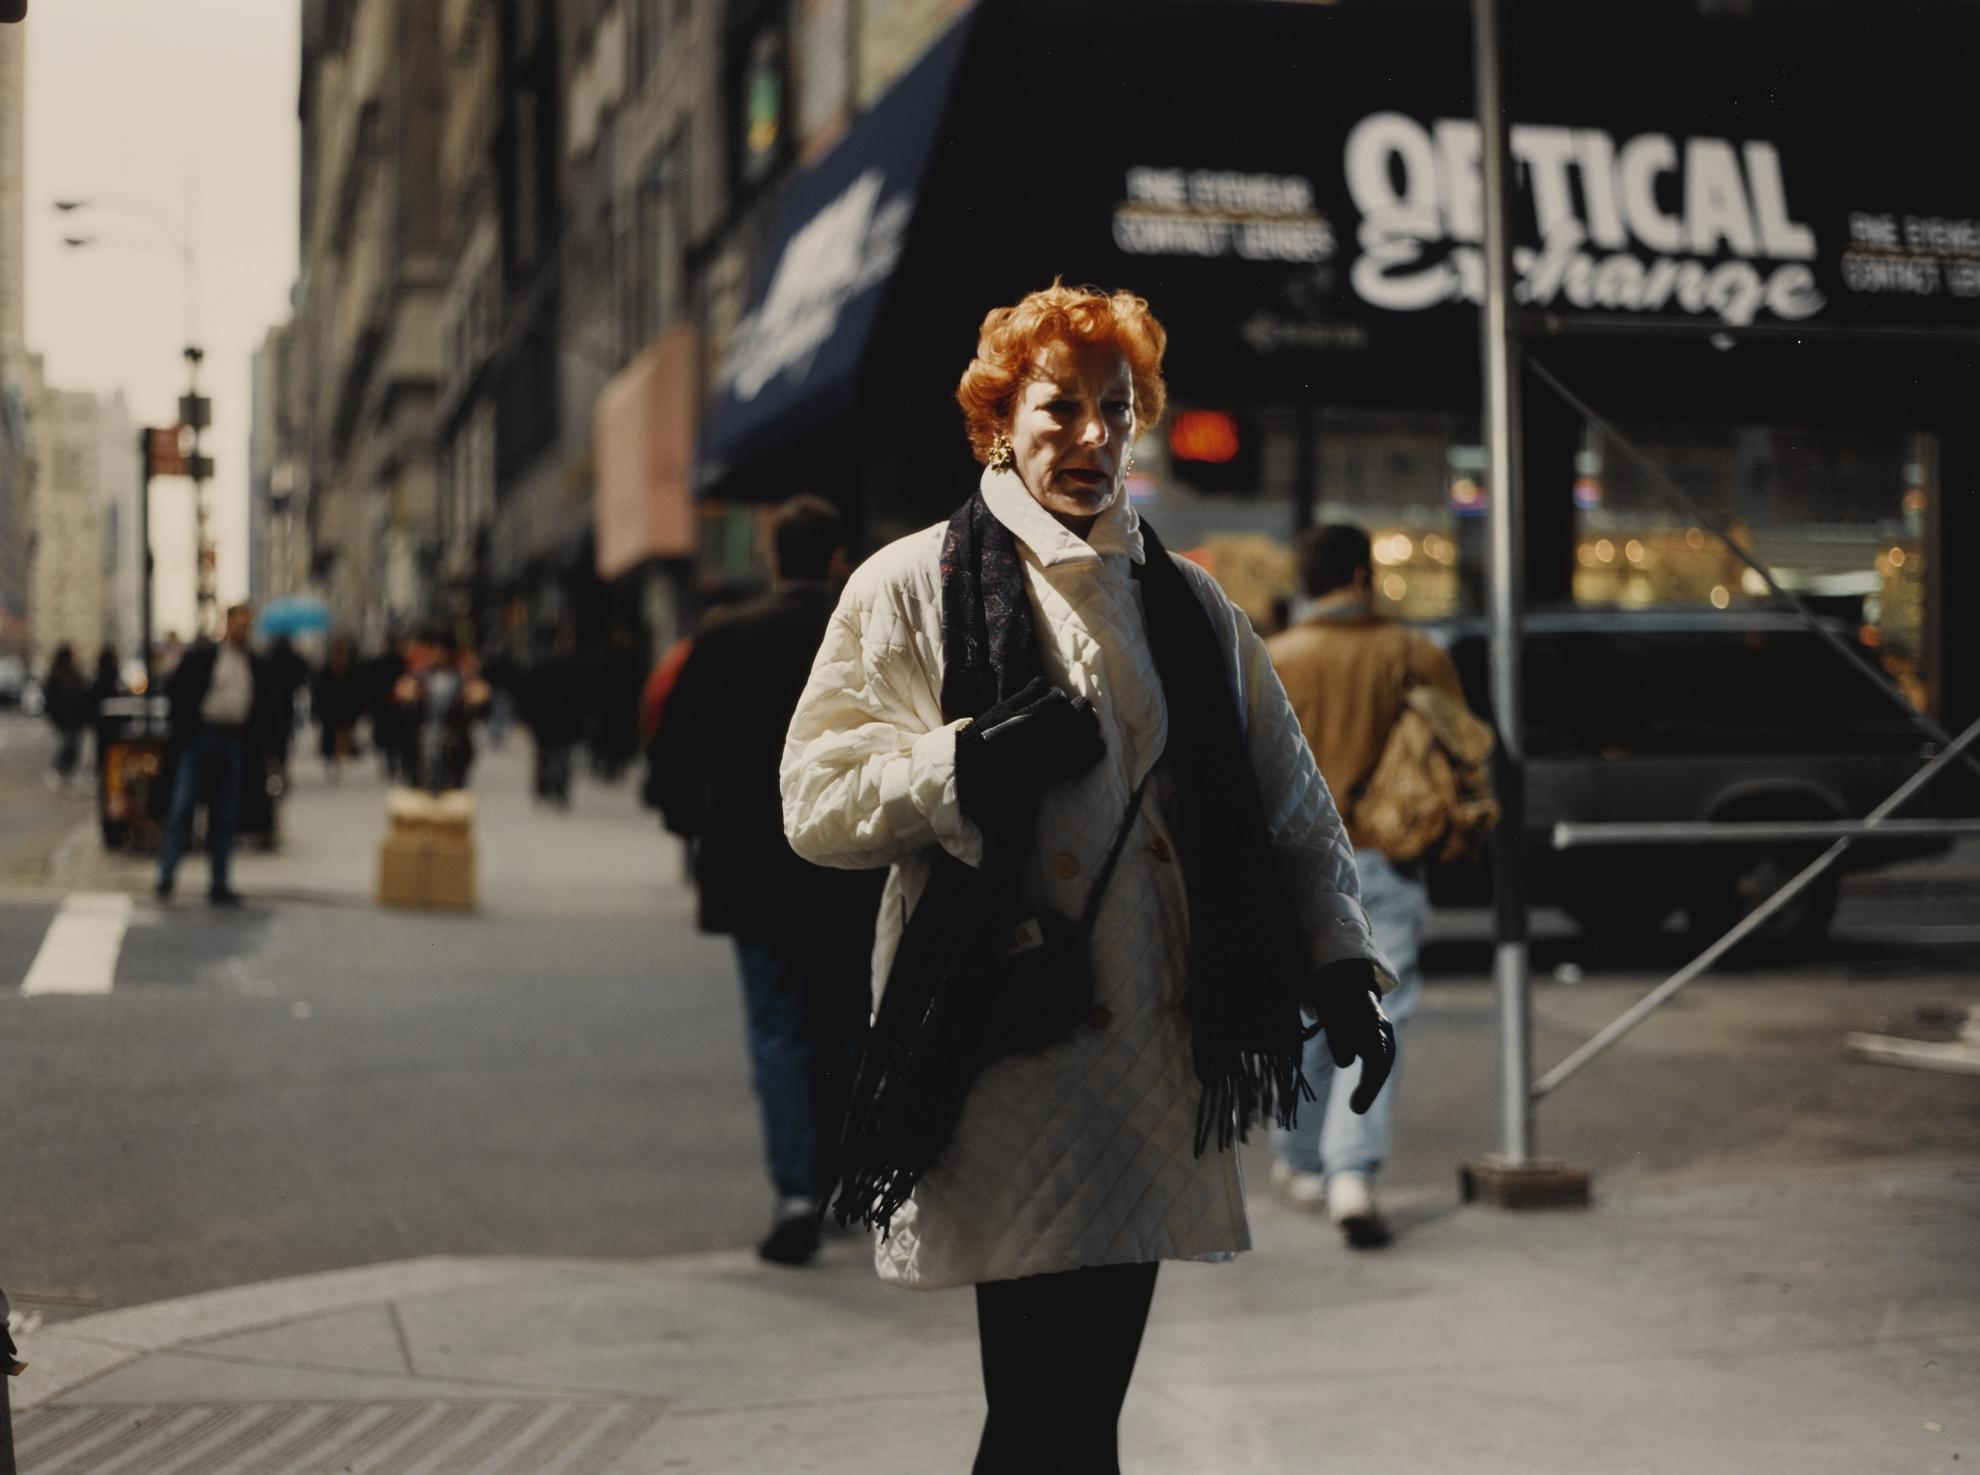 Philip-Lorca diCorcia-New York-1993